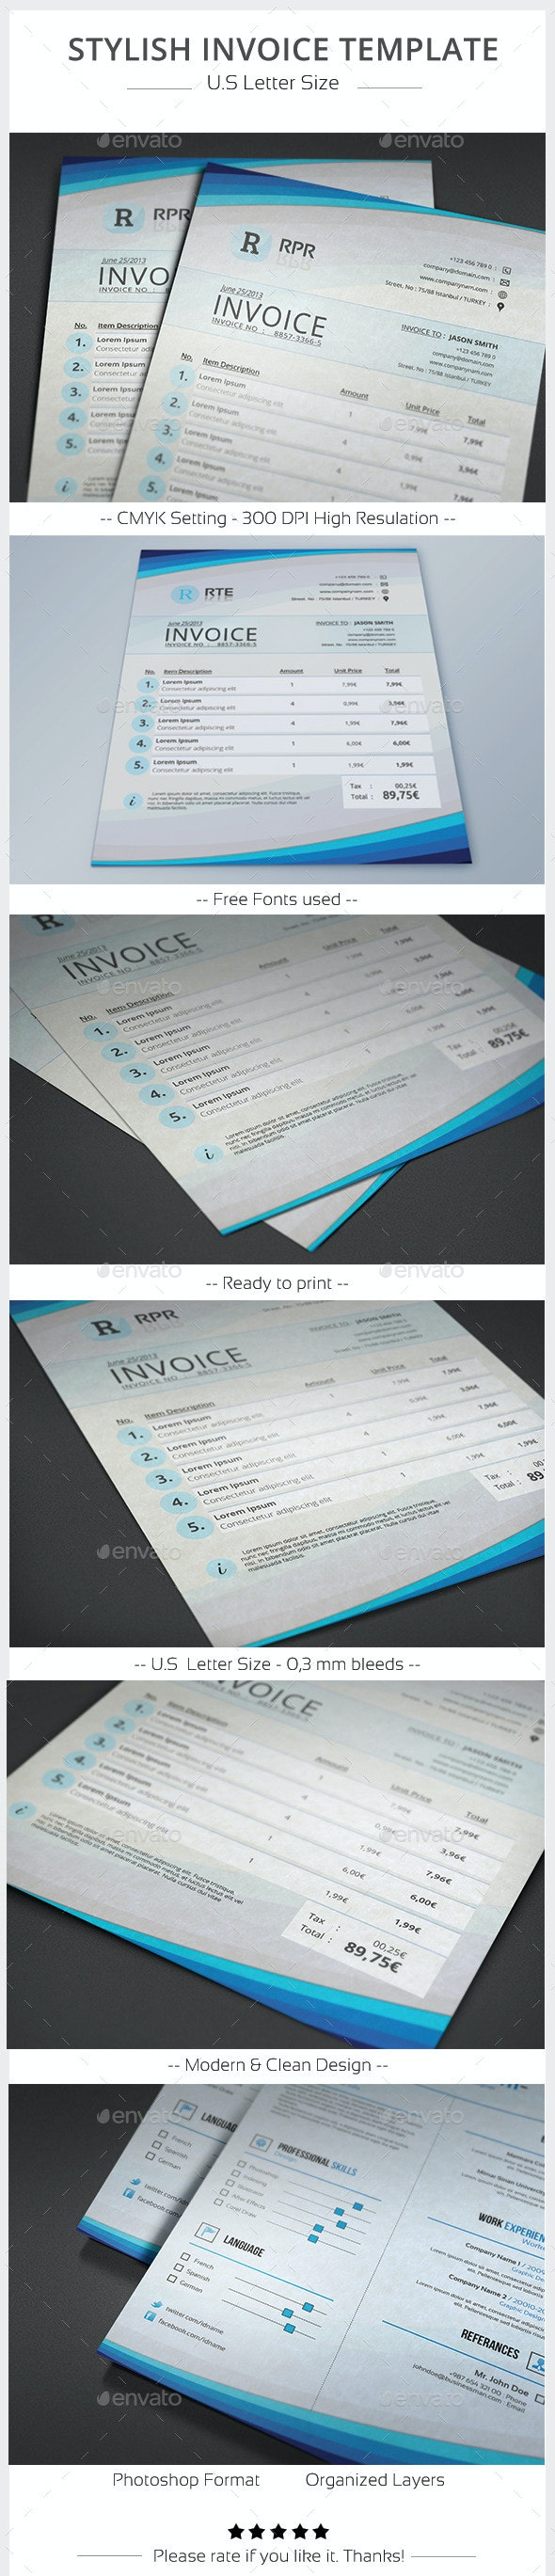 Stylish Invoice Template - Proposals & Invoices Stationery